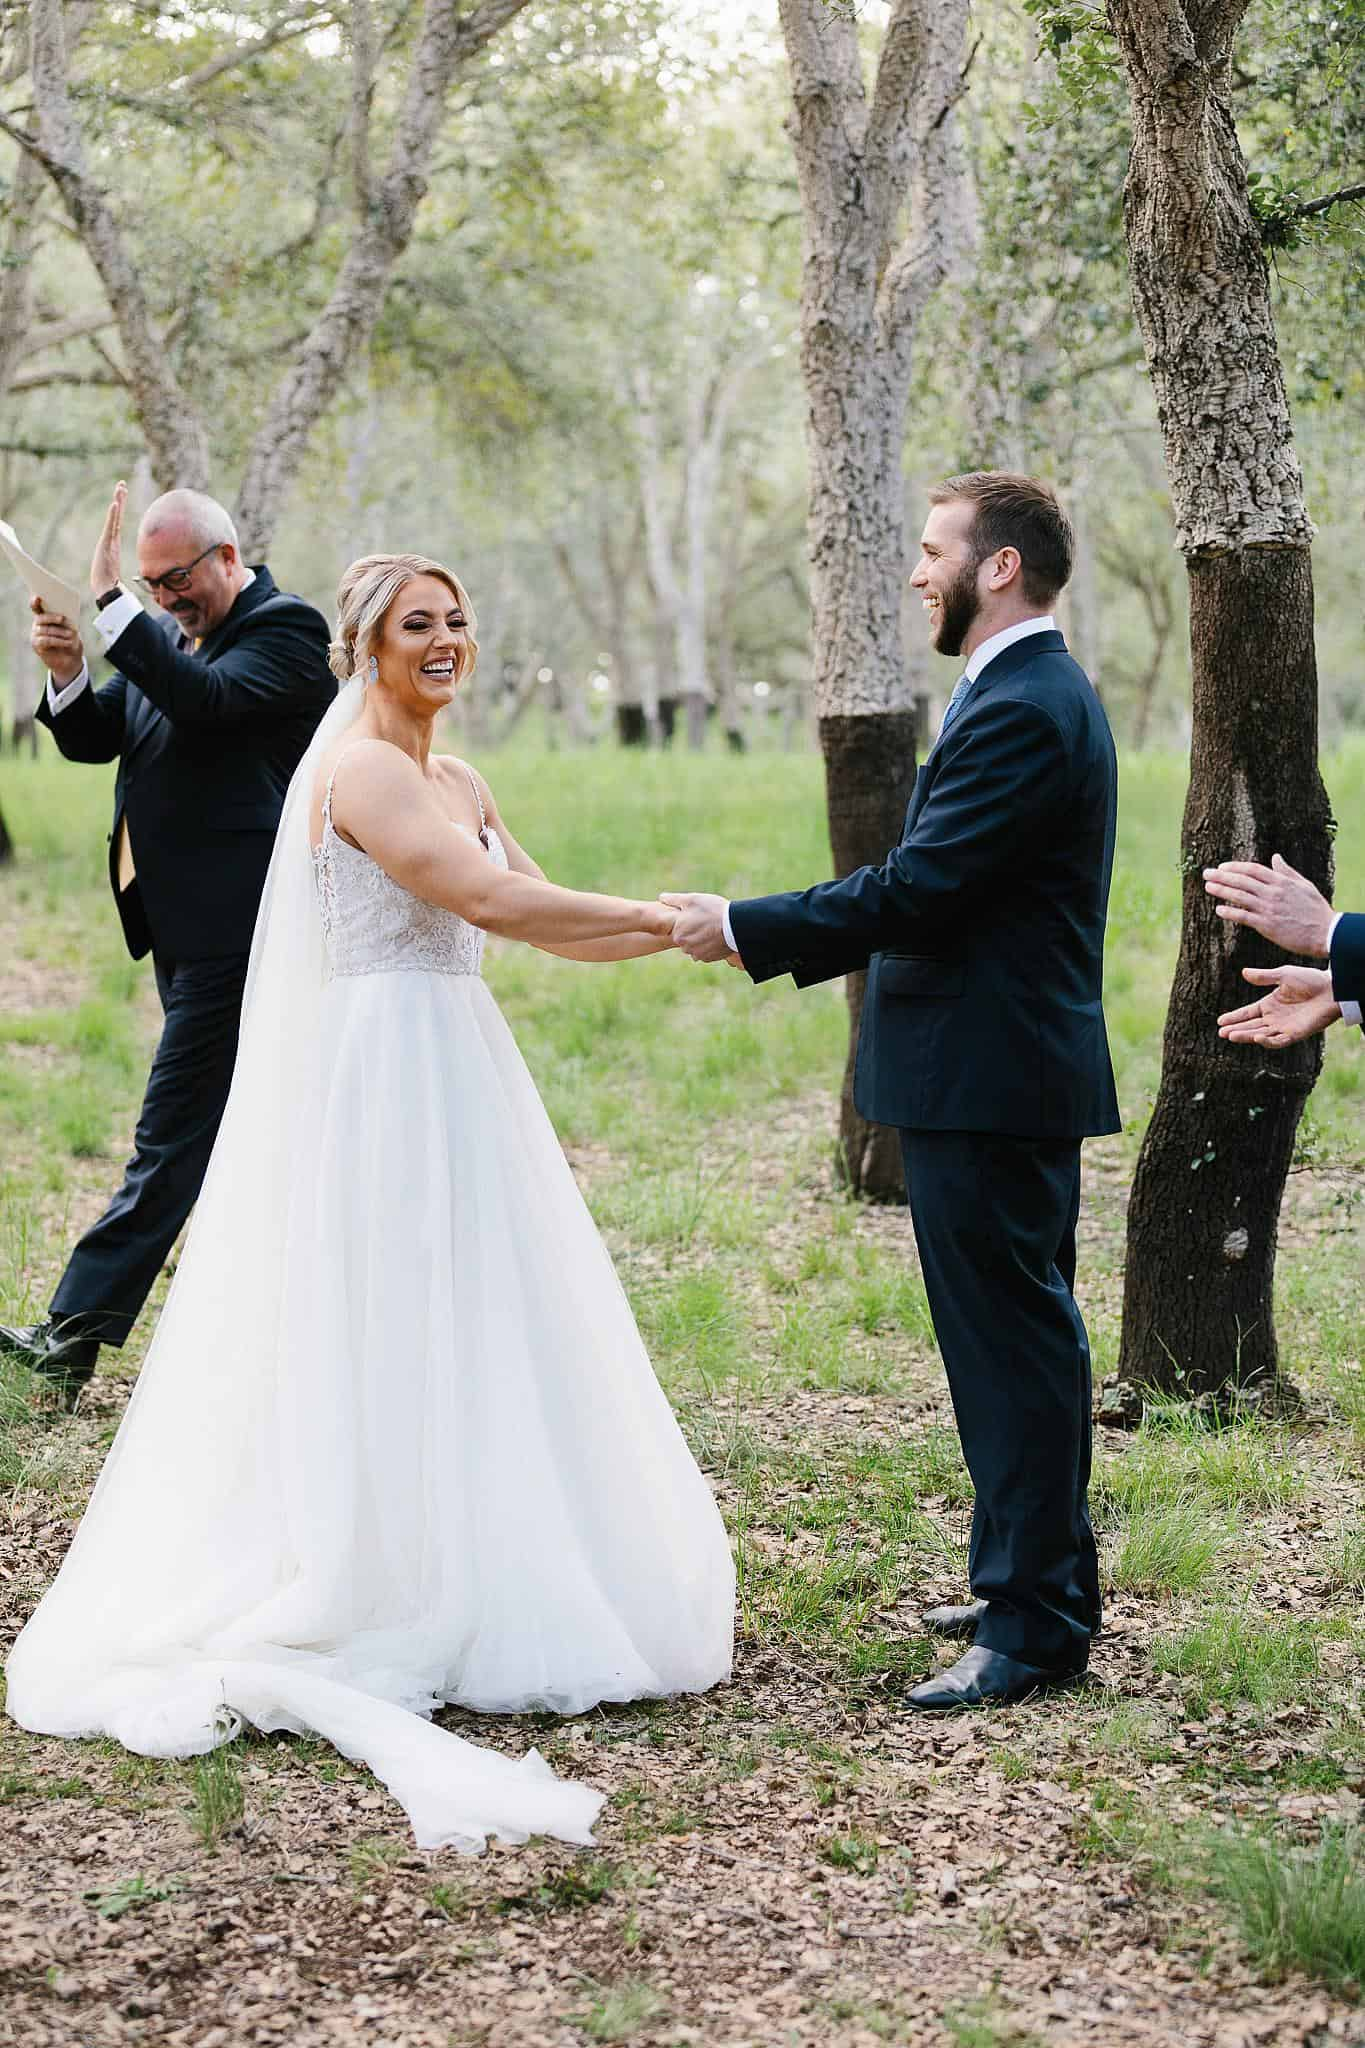 Celebrant claps as bride and groom are freshly married